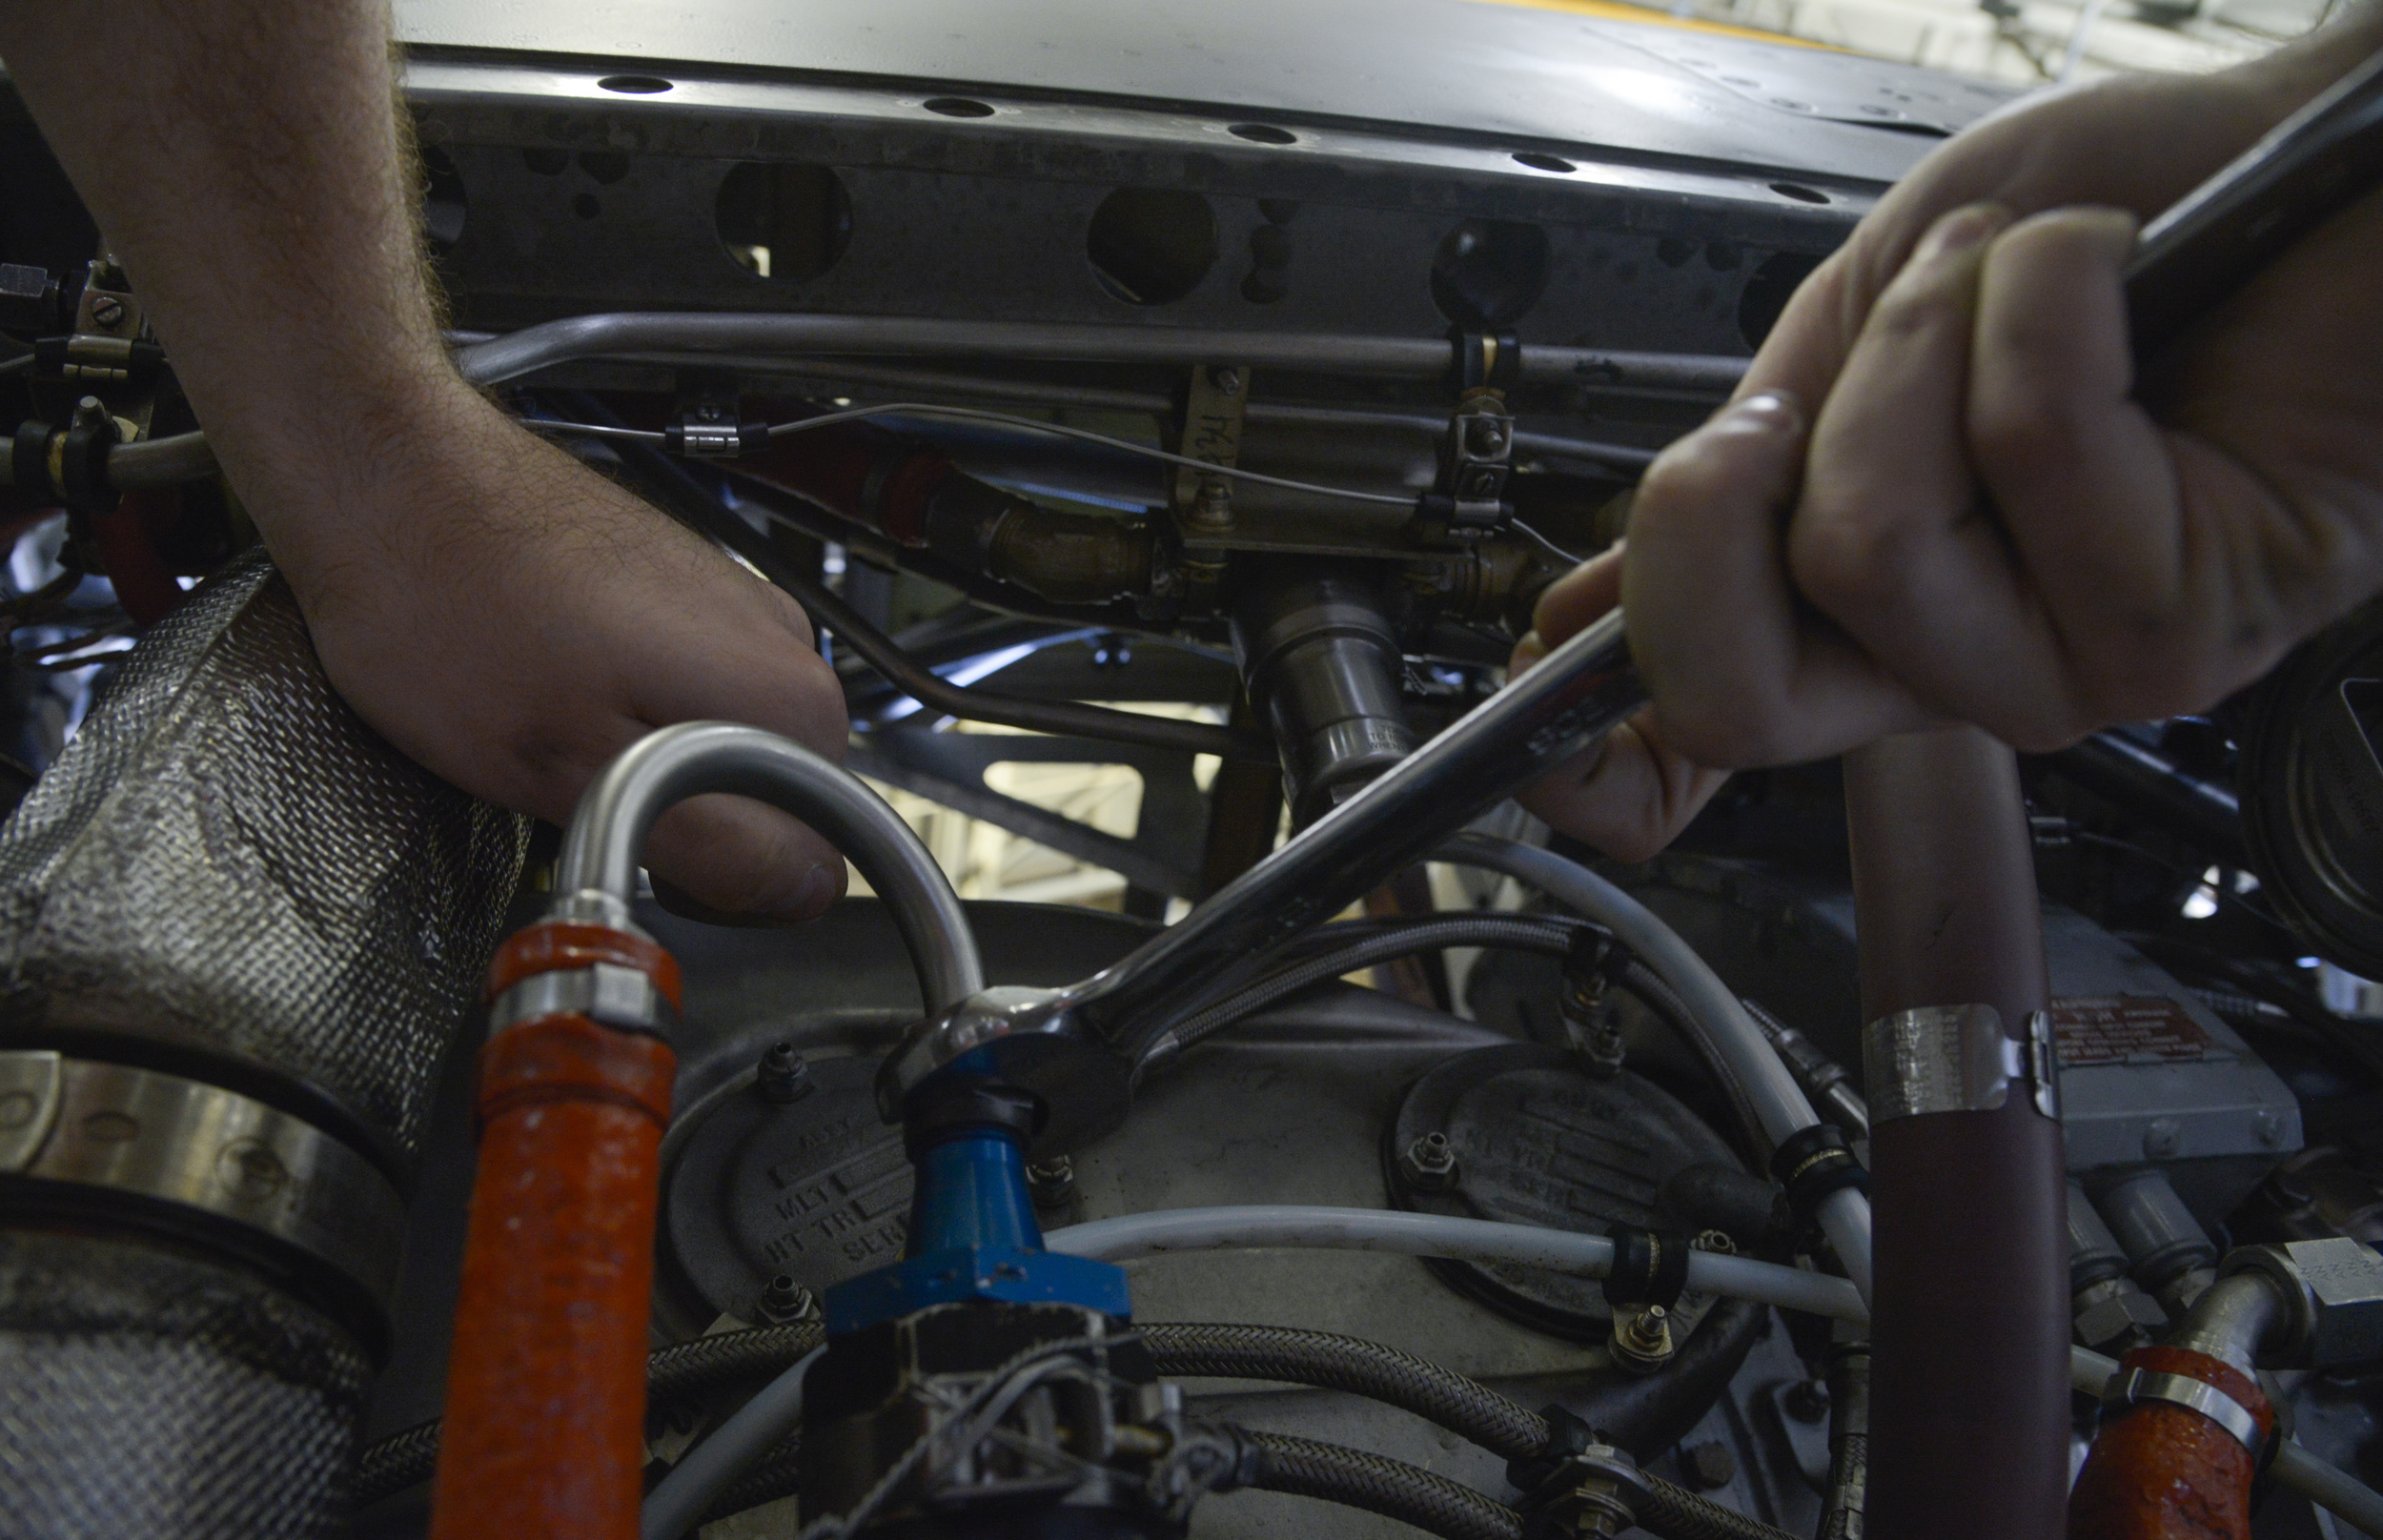 Airman Sam Johnson, 374th Maintenance Squadron propulsion flight aerospace propulsion apprentice, tightens a bolt on a low-pressure fuel filter on an engine at Yokota Air Base, Japan, Sept. 23, 2015. In addition to providing support for both Yokota and Kadena Air Base, the flight provides engine and propeller support for all active duty, guard and reserve C-130s tasked within their area of responsibility. (U.S. Air Force photo by Senior Airman David Owsianka/Released)